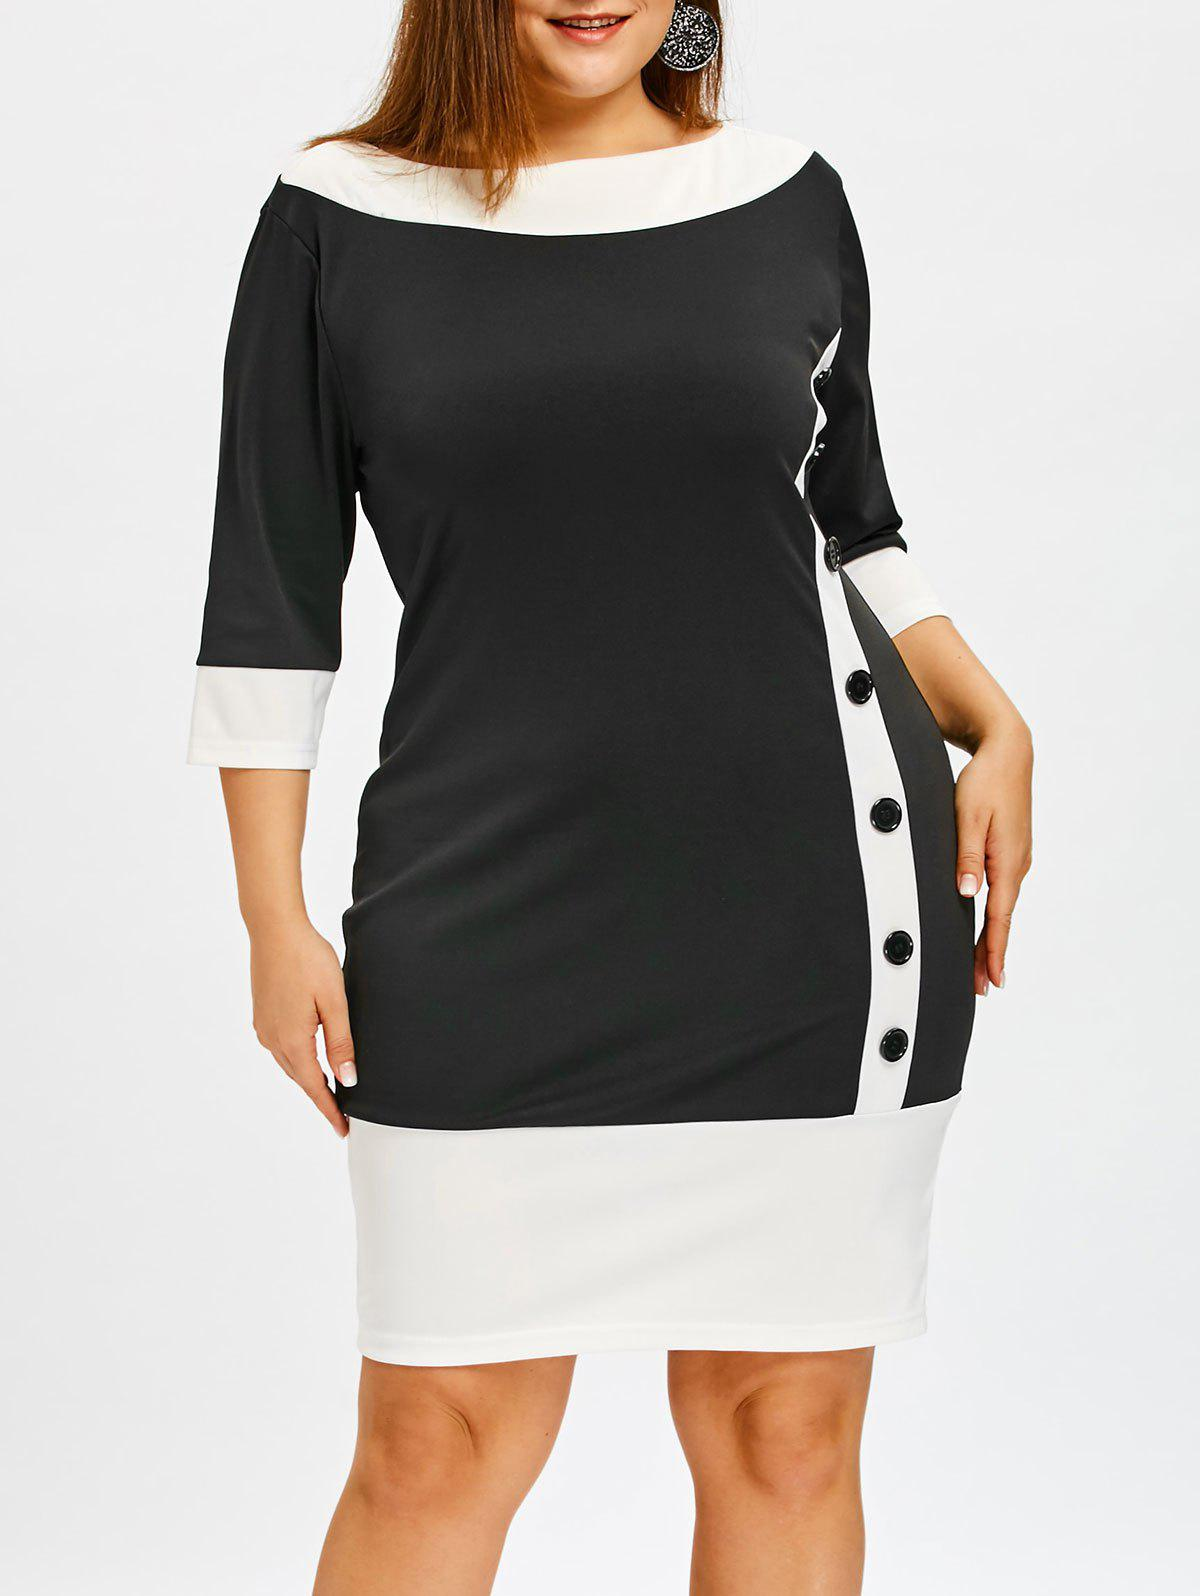 Color Block Plus Size Bodycon Dress with Button стиральная машина славда ws 35e